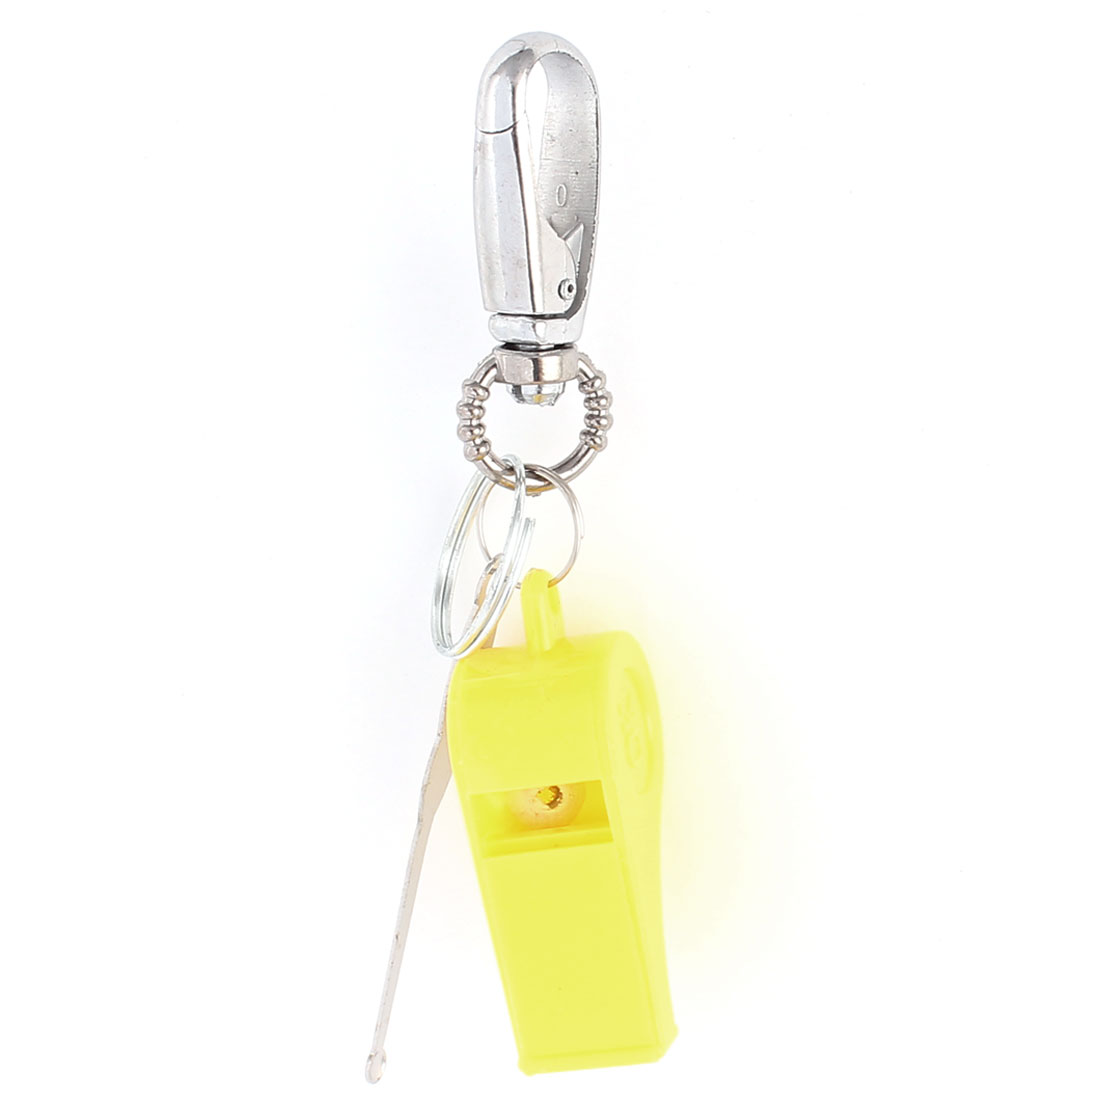 3Pcs Plastic Yellow Whistle Alloy Earpick Pendent Lobster Clasp Keychain Key Ring